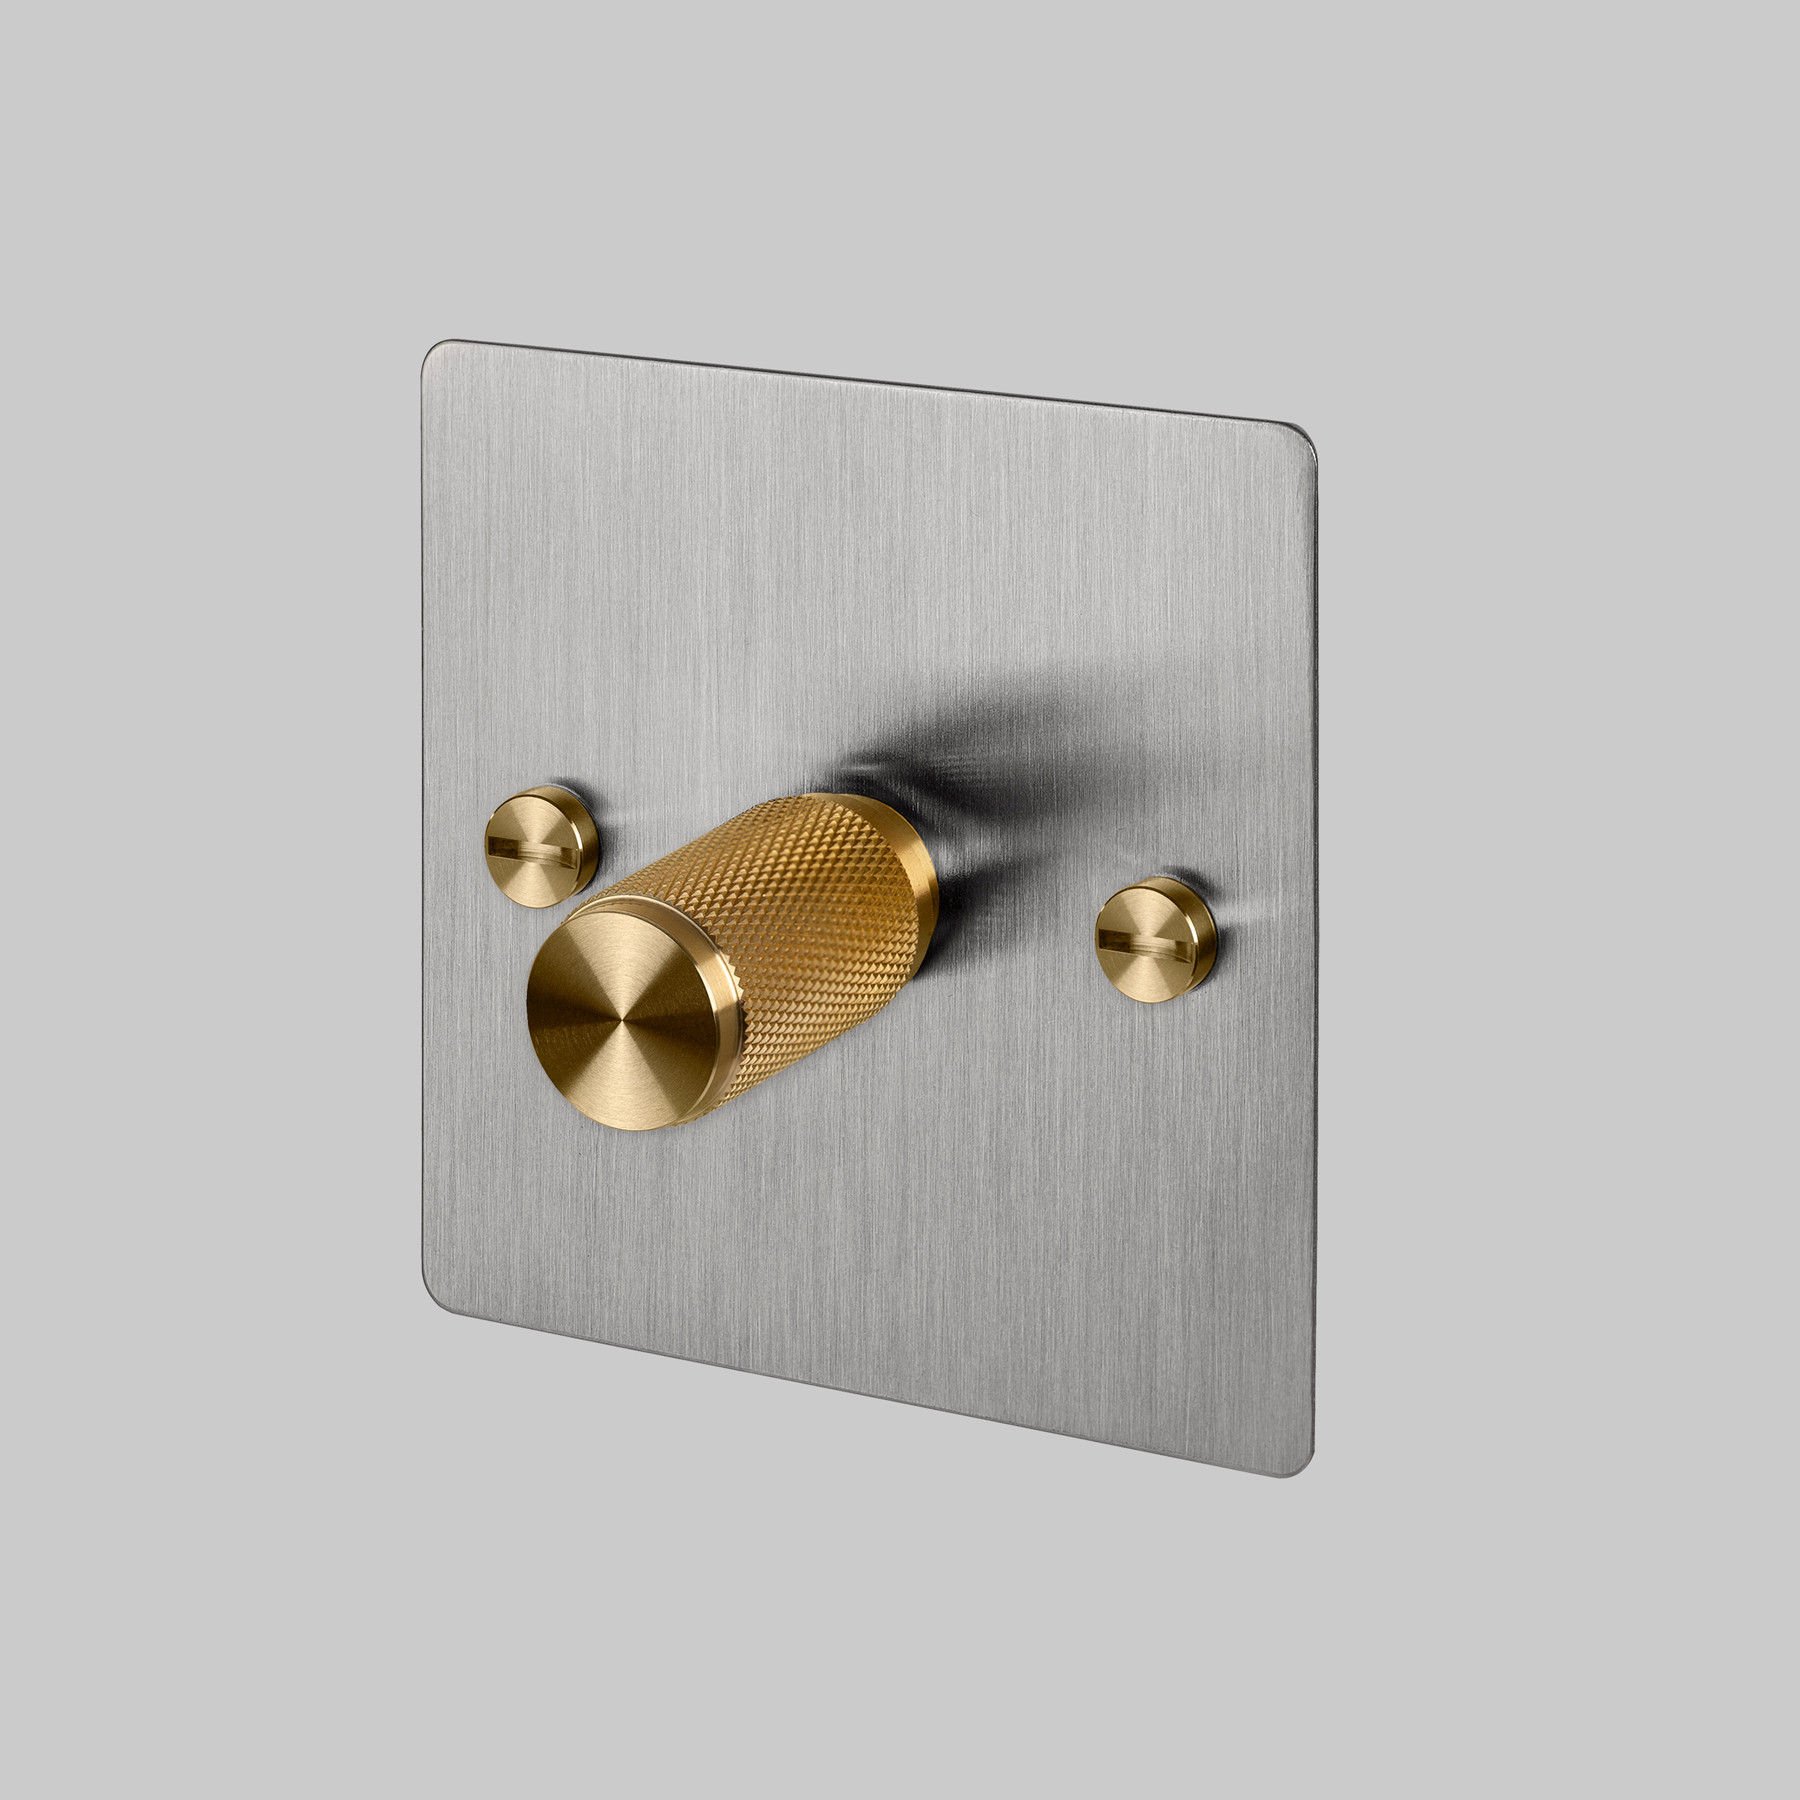 1G DIMMER / STEEL / BRASS